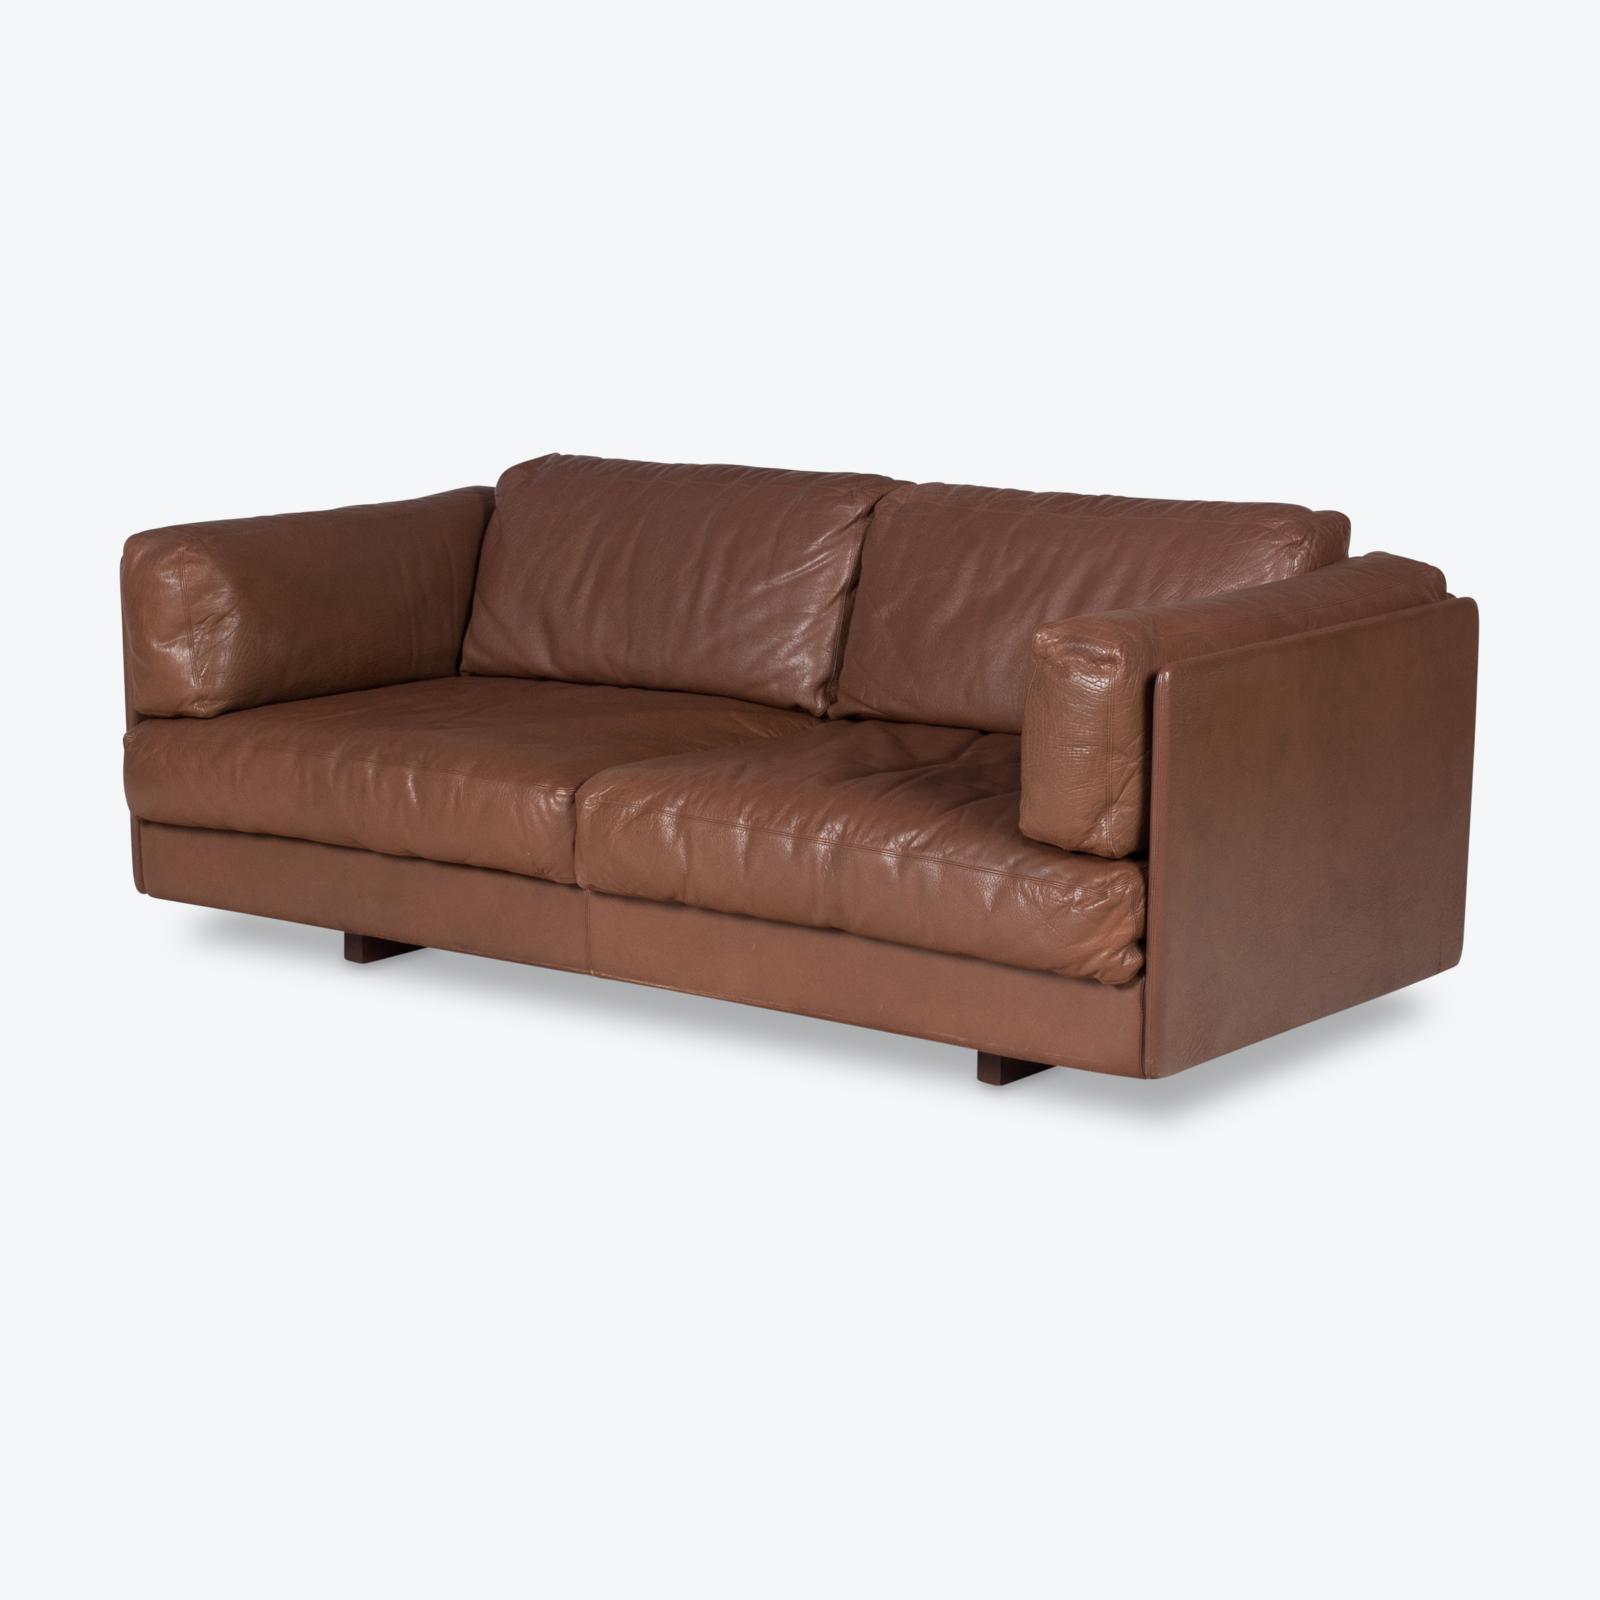 2 Seater Sofa In Brown Leather, 1960s, Switzerland Hero 1